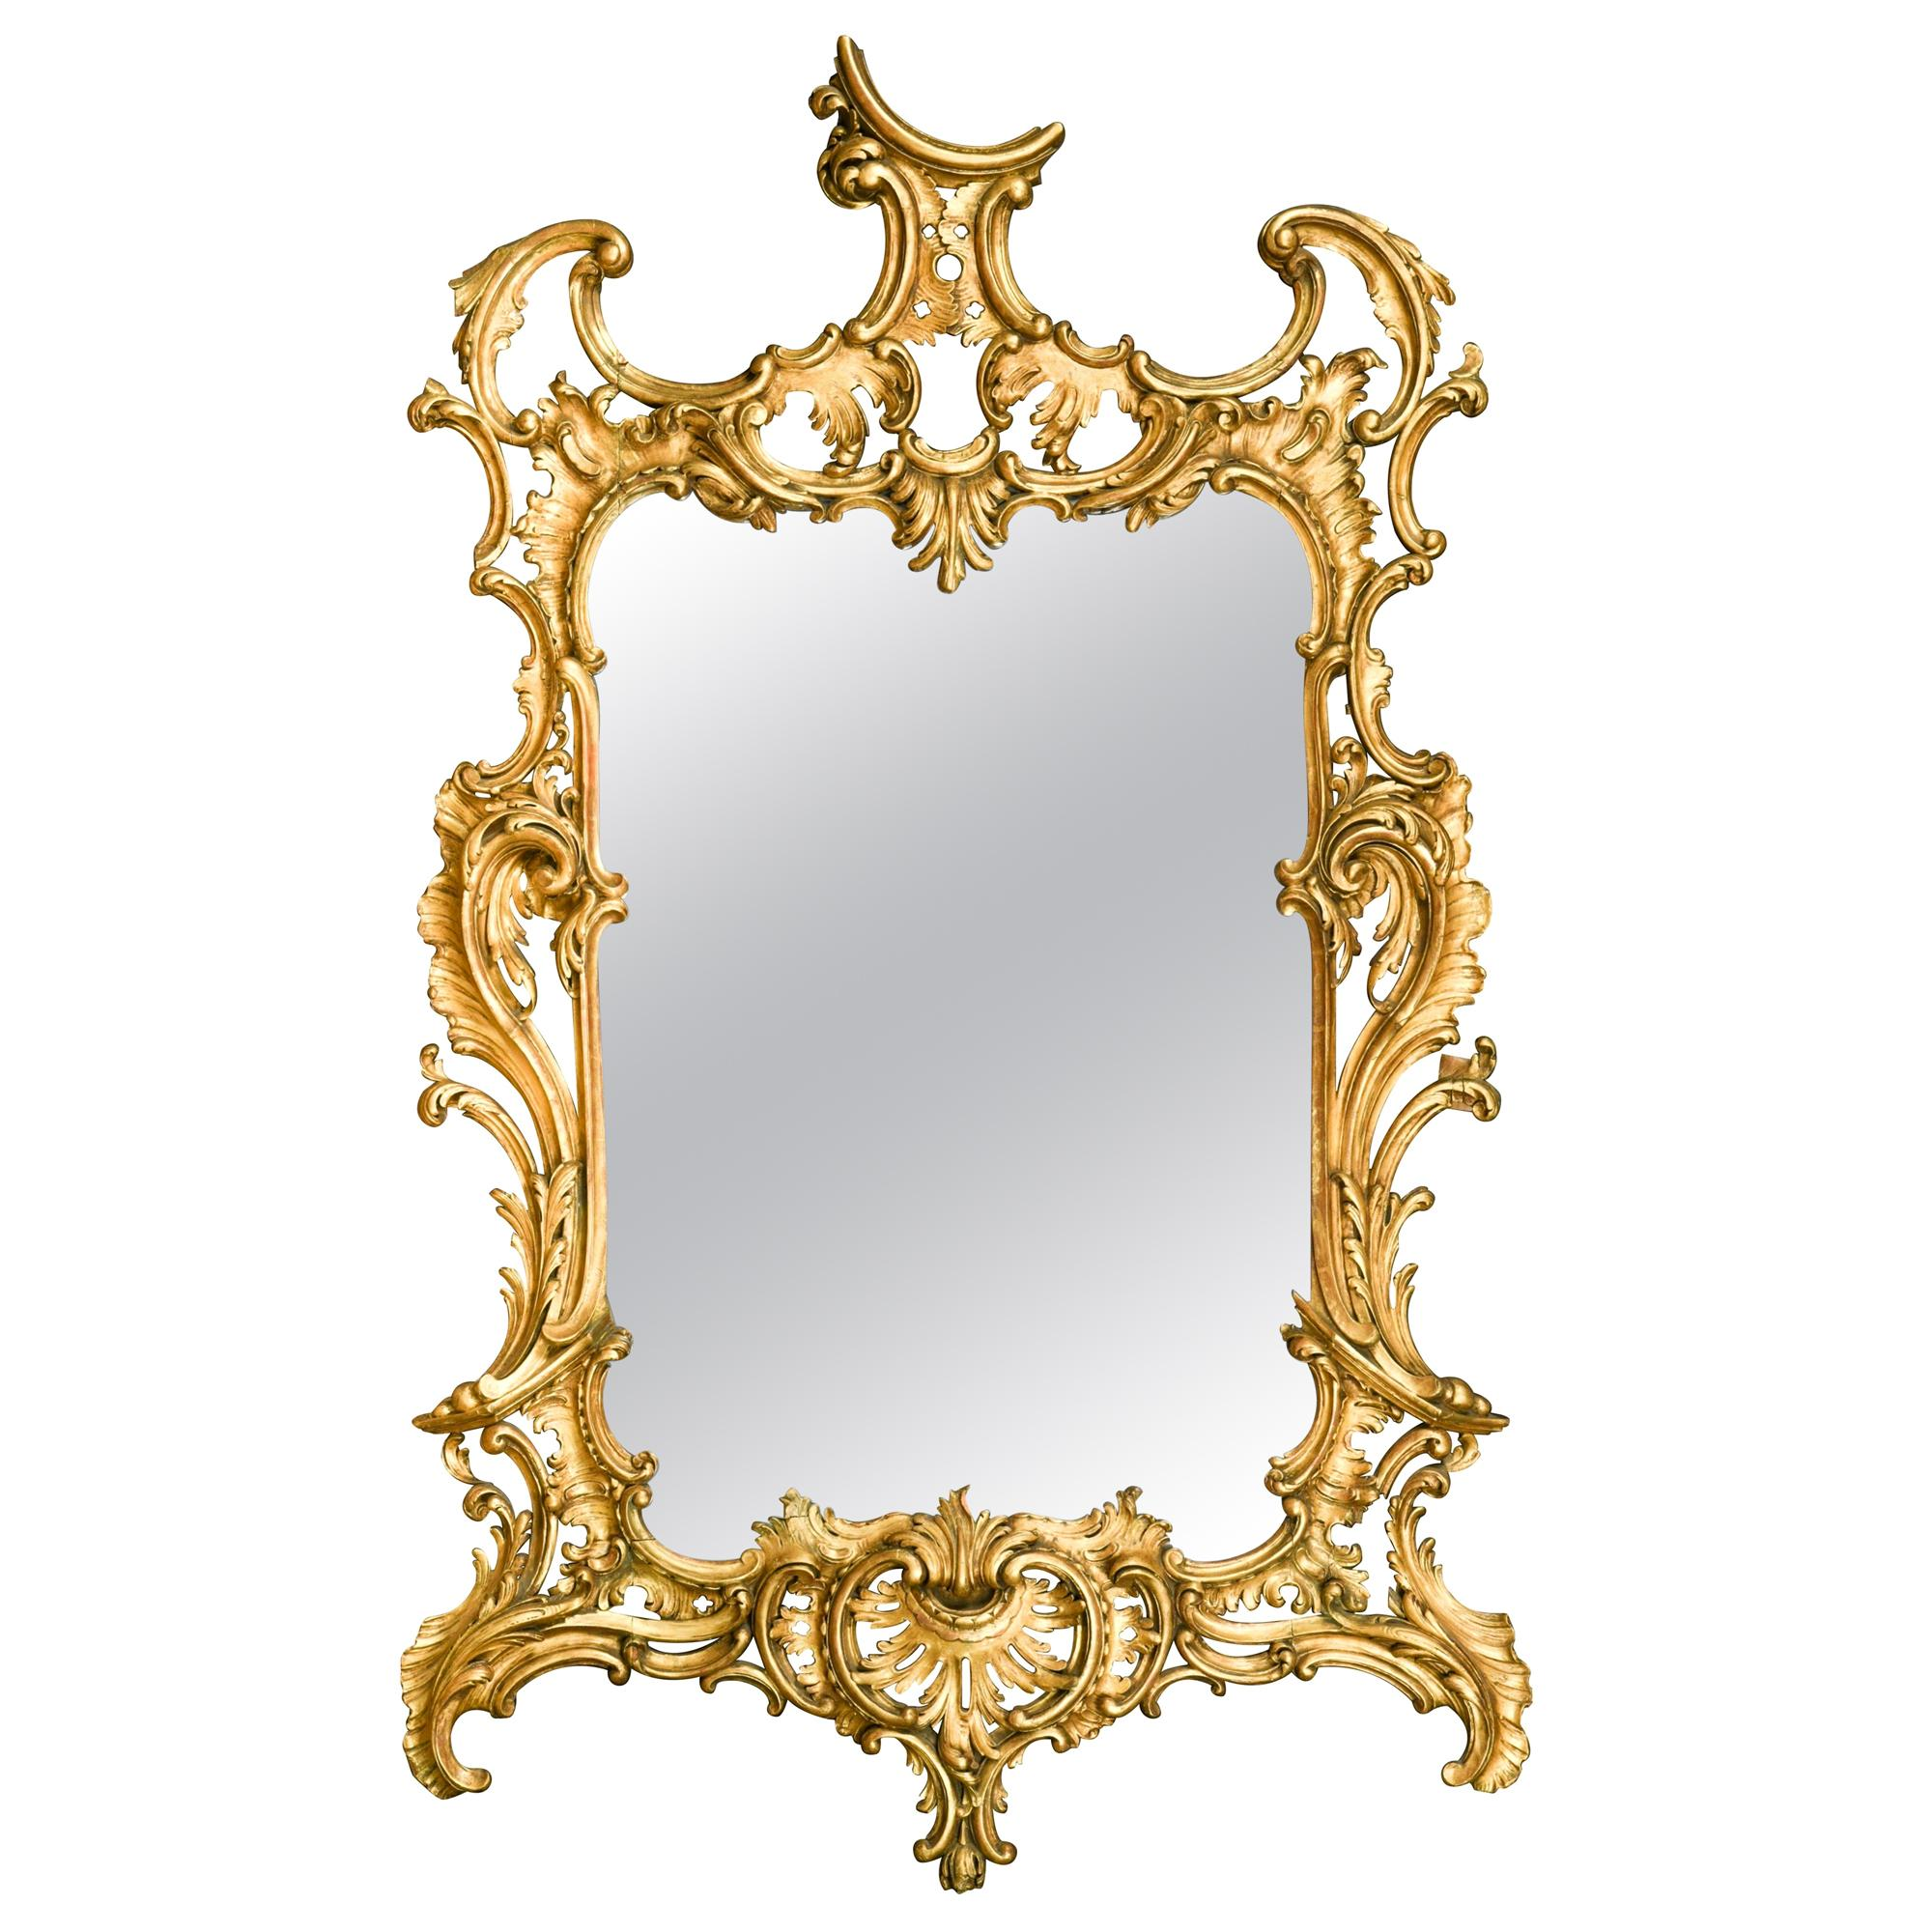 18th century Rococo Carved Giltwood Mirror